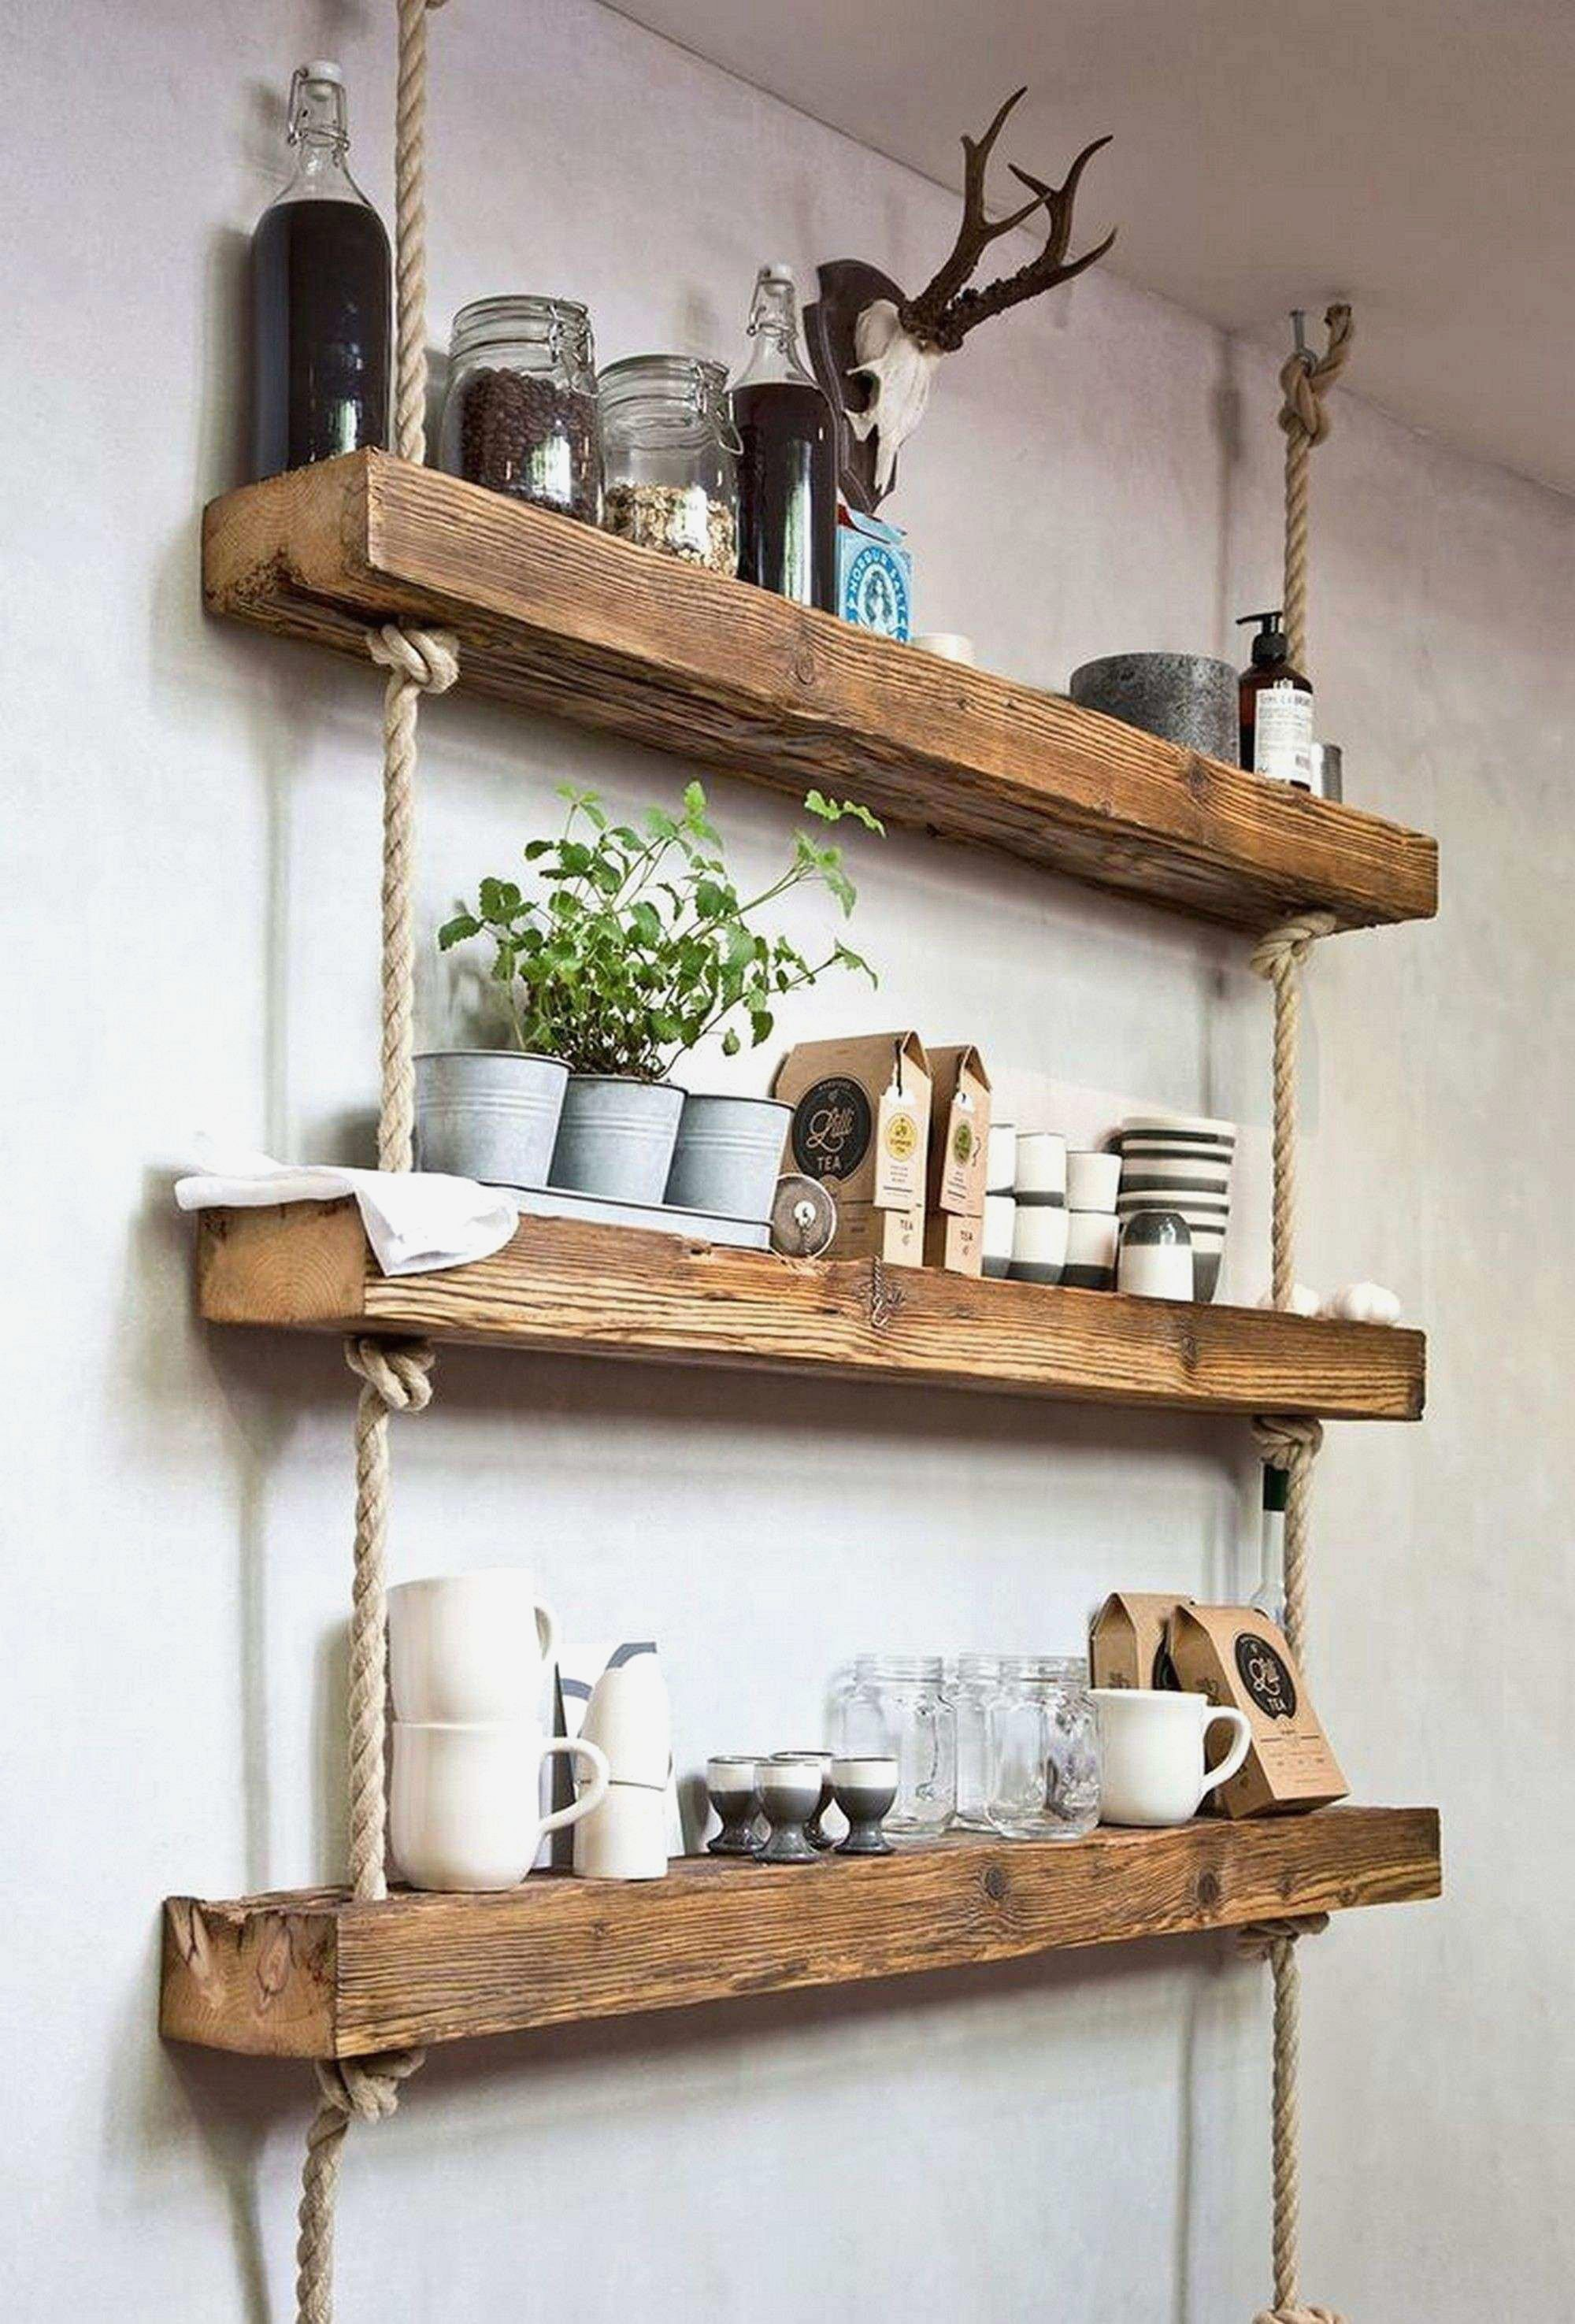 15 Fabulous Rack Designs To Make Your House Neatly Arranged